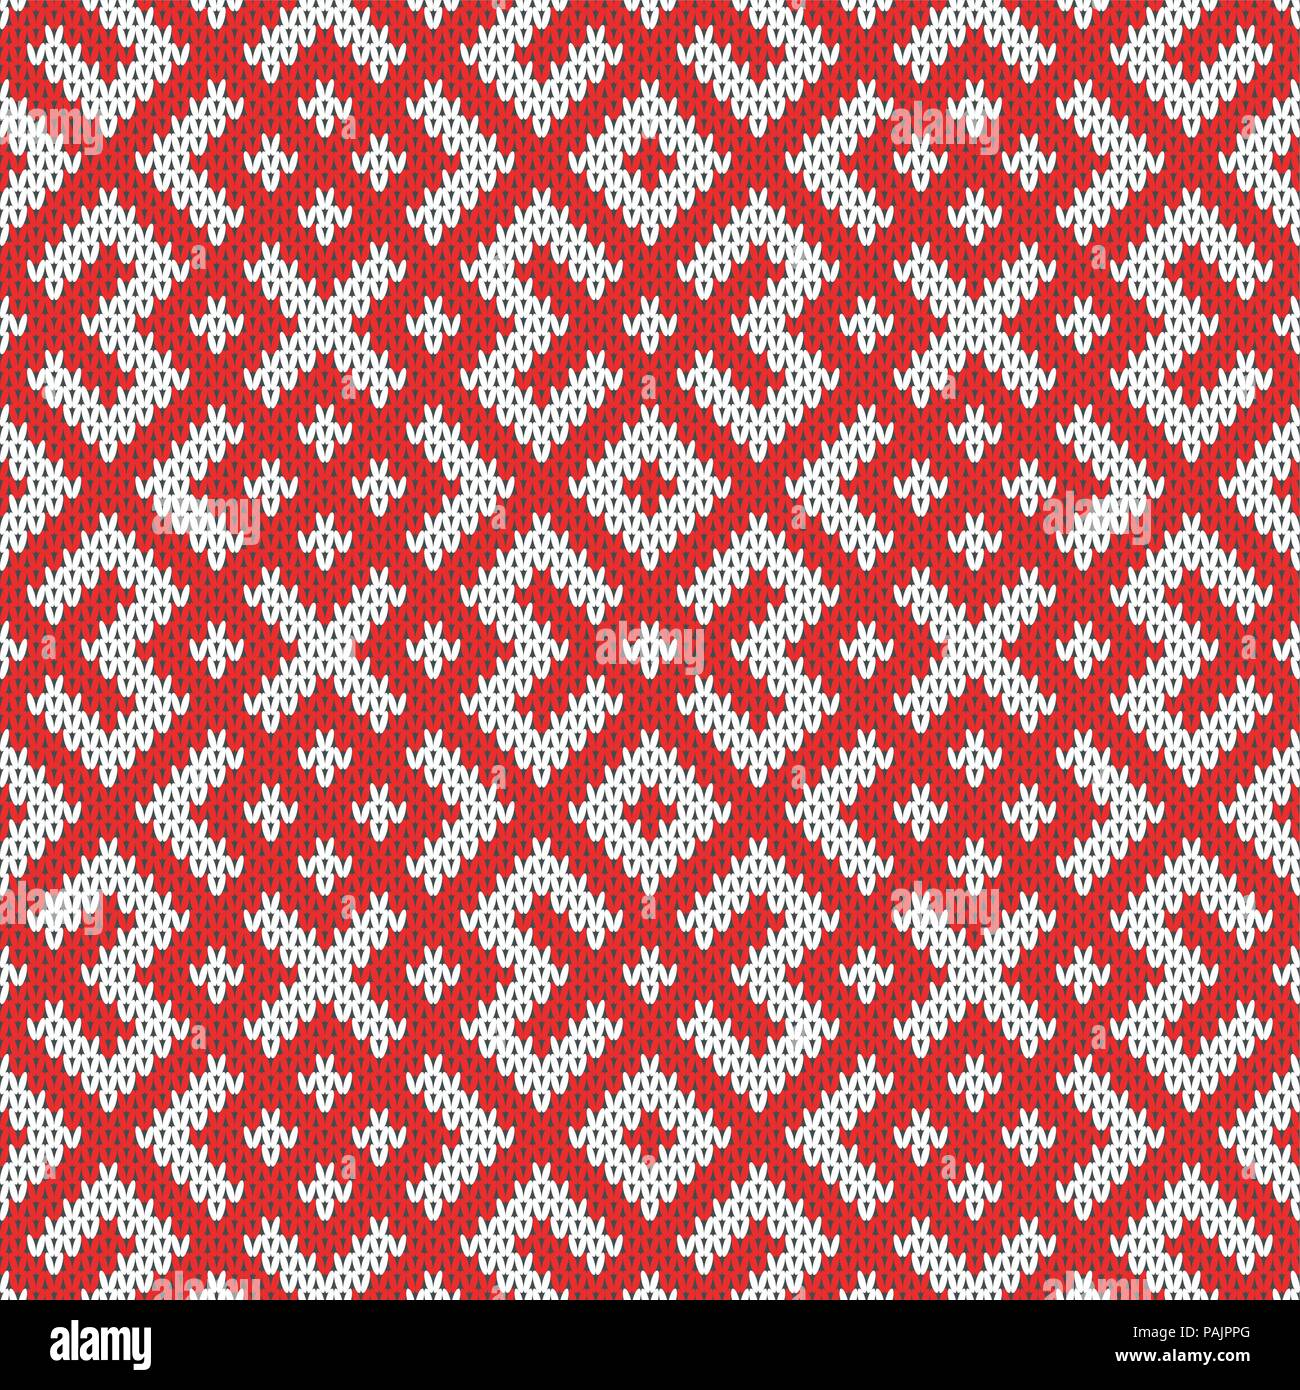 Seamless Knitting Pattern.Based on traditional Russian ornament.Red and white.Wool Knit Texture Imitation. - Stock Vector